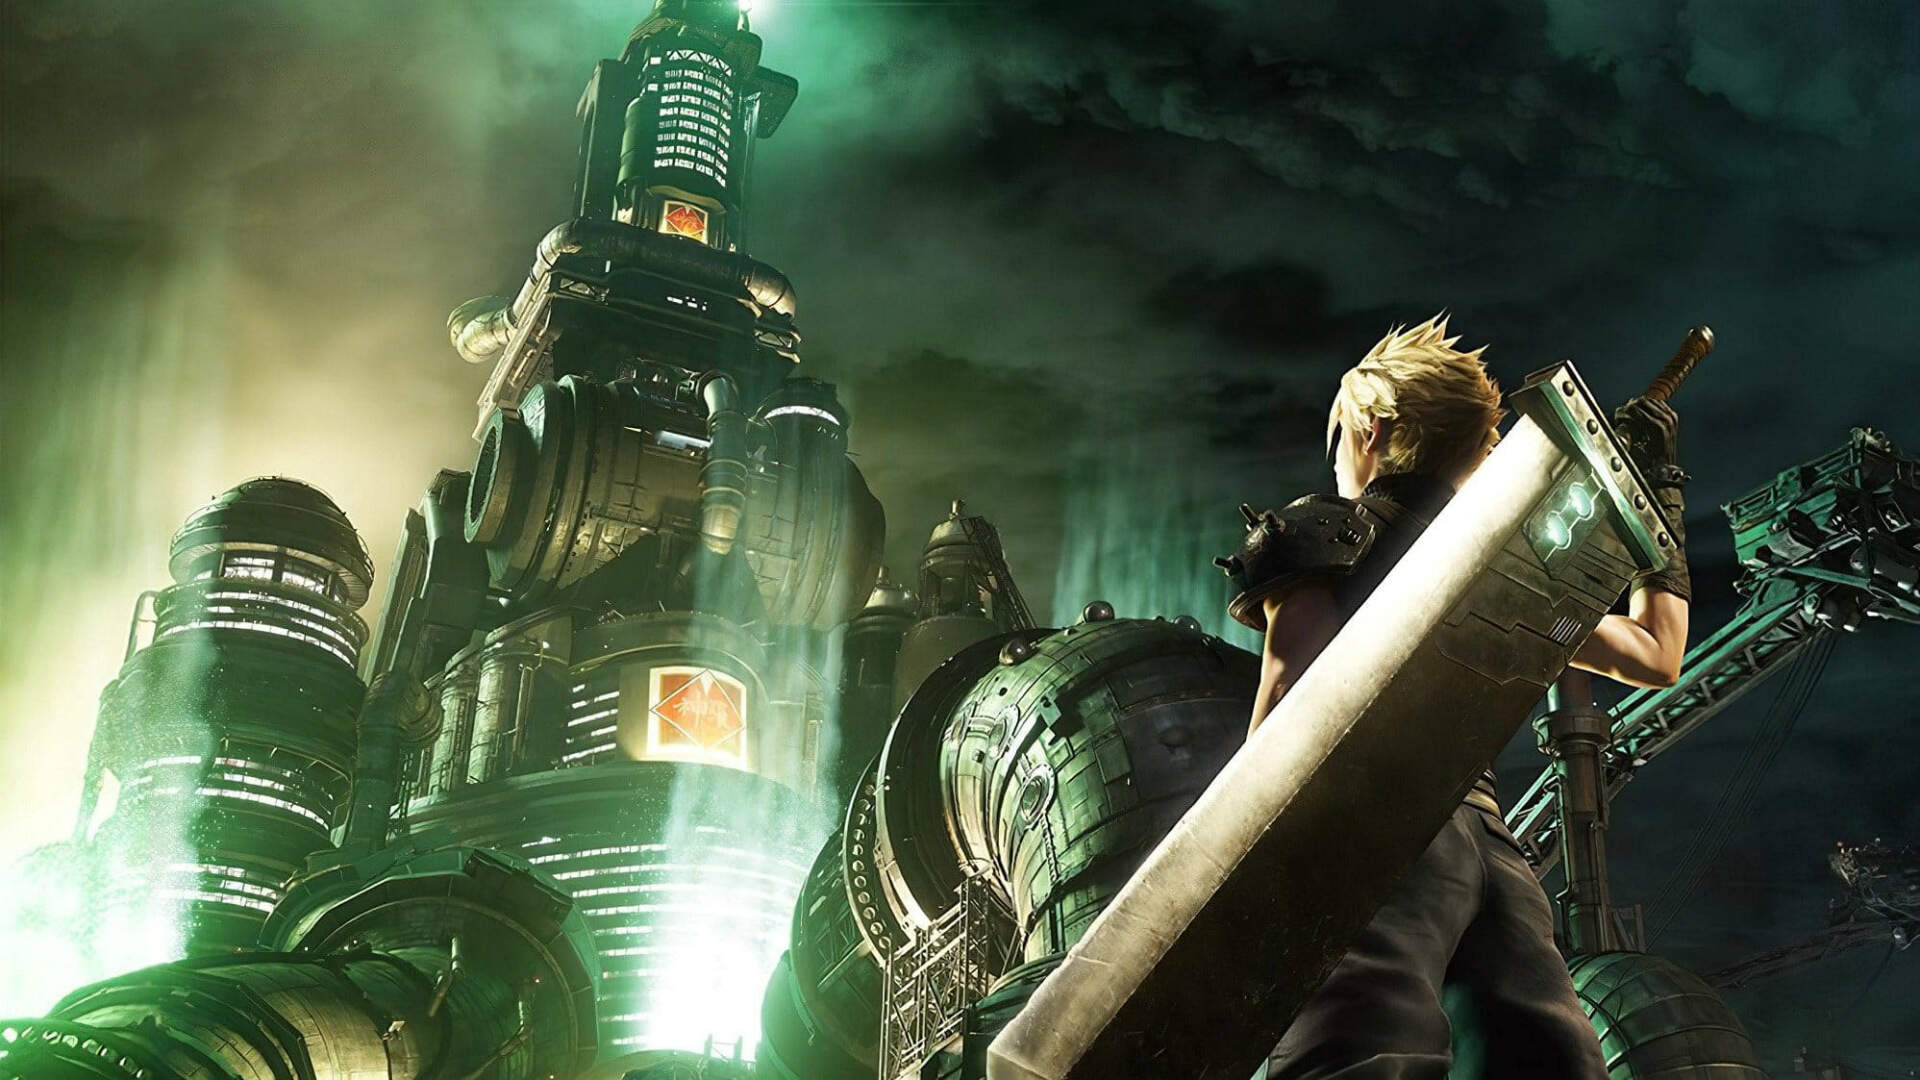 Final Fantasy 7 Remake Release Date - PS4 Box Art, Gameplay Trailer, Collector's Edition - Everything We Know